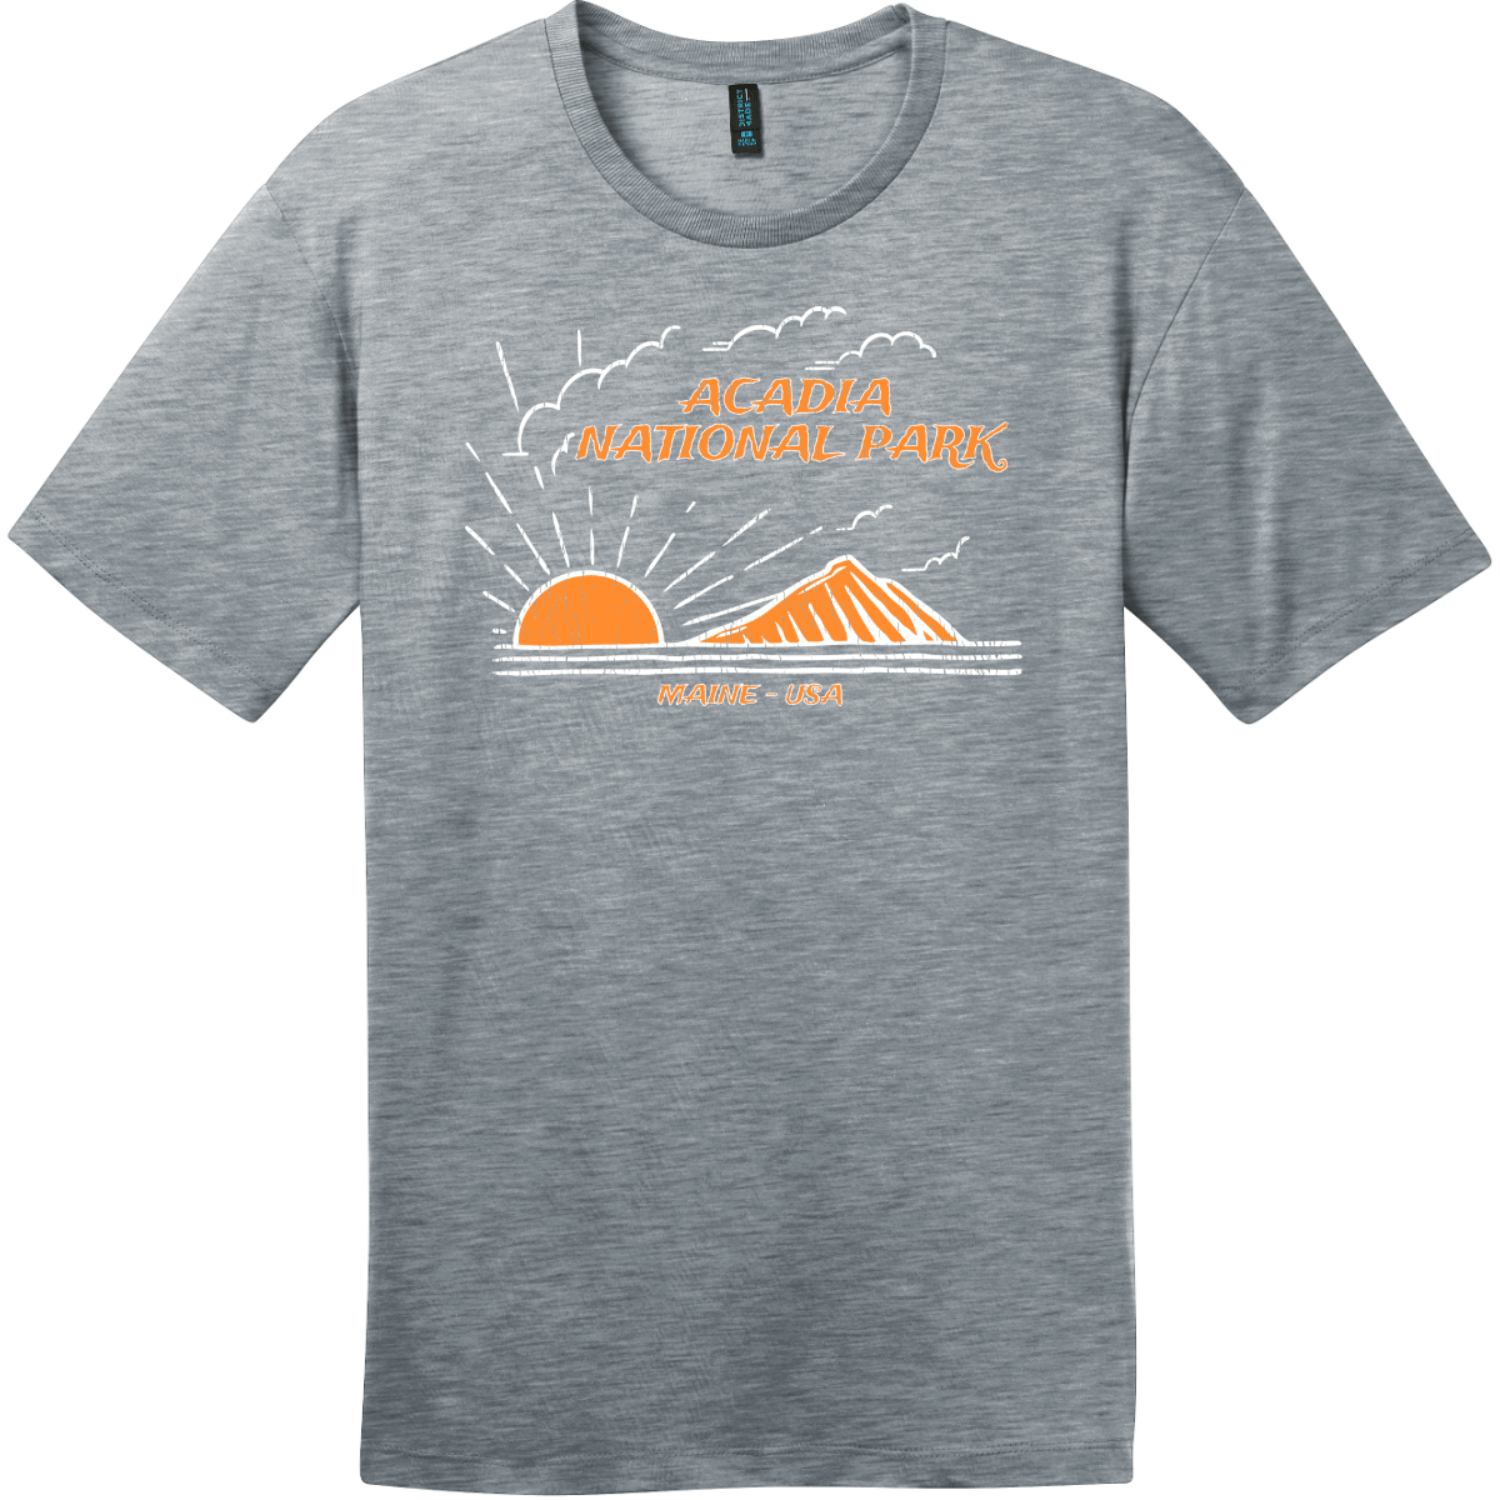 Acadia National Park Mountain To Sea T-Shirt Heathered Steel District Perfect Weight Tee DT104